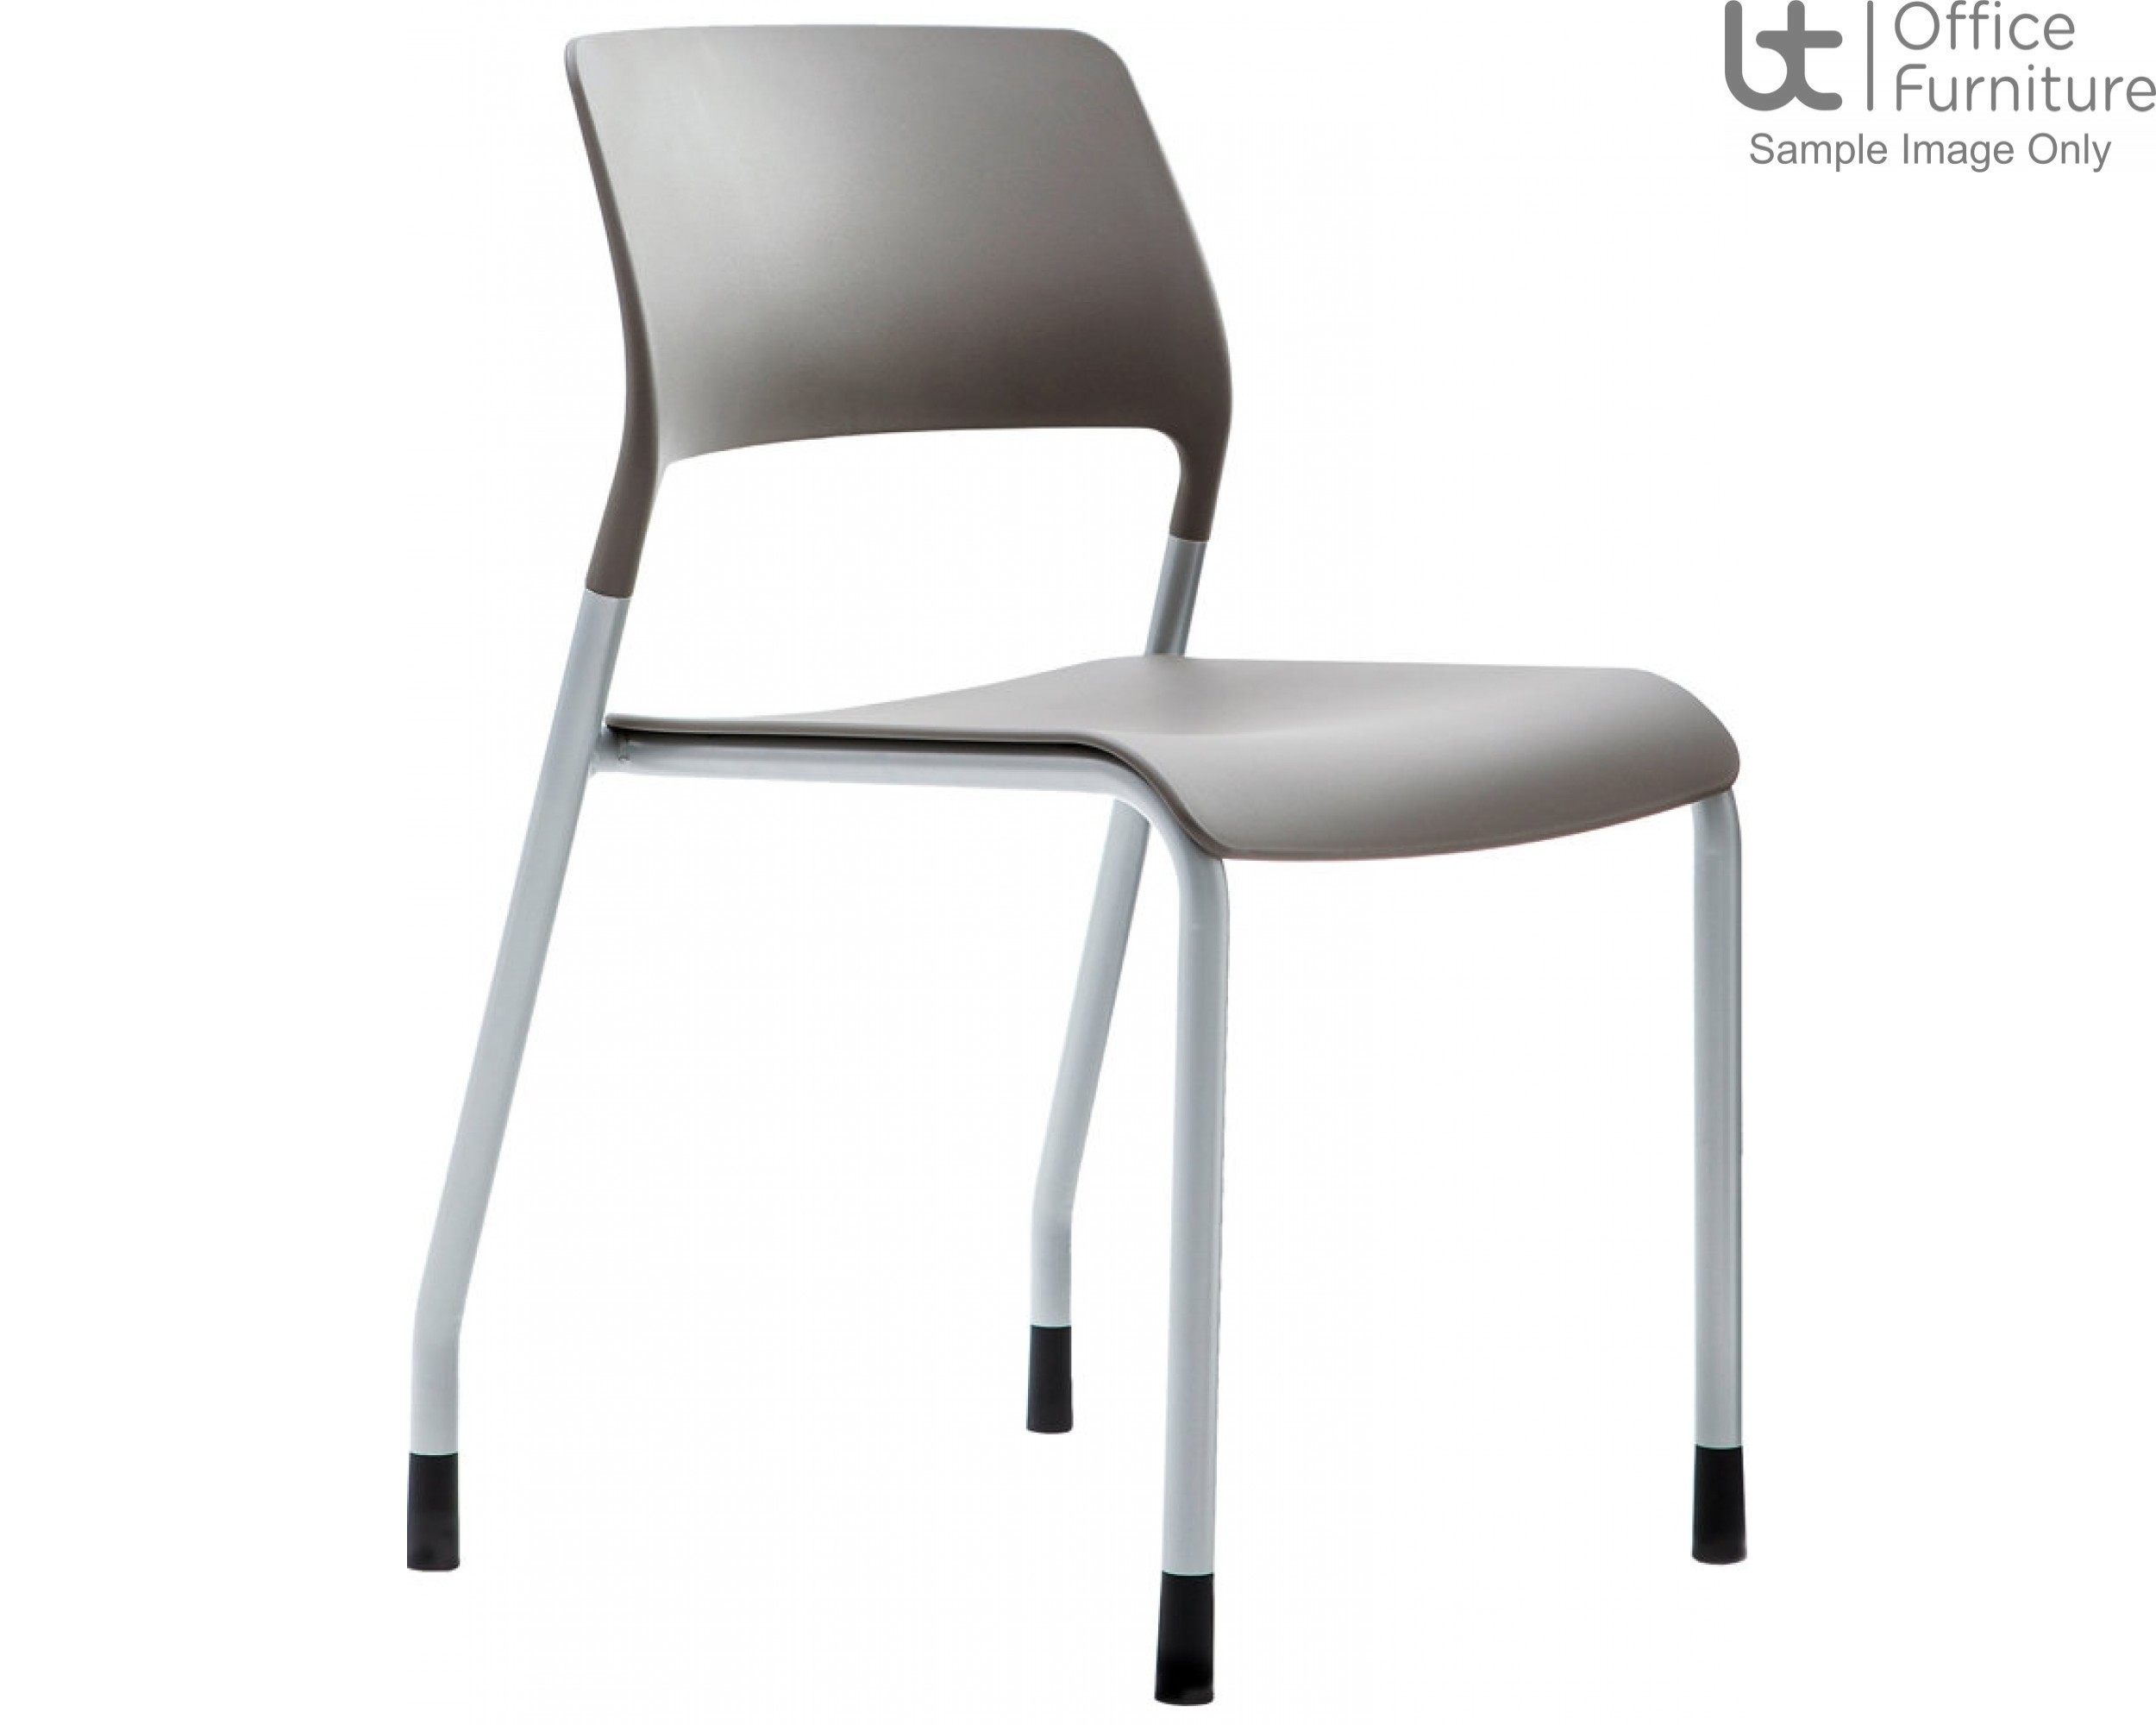 Verco Visitor / Conference Seating - Muse 4 legged Stone Plastic Stacking Chair